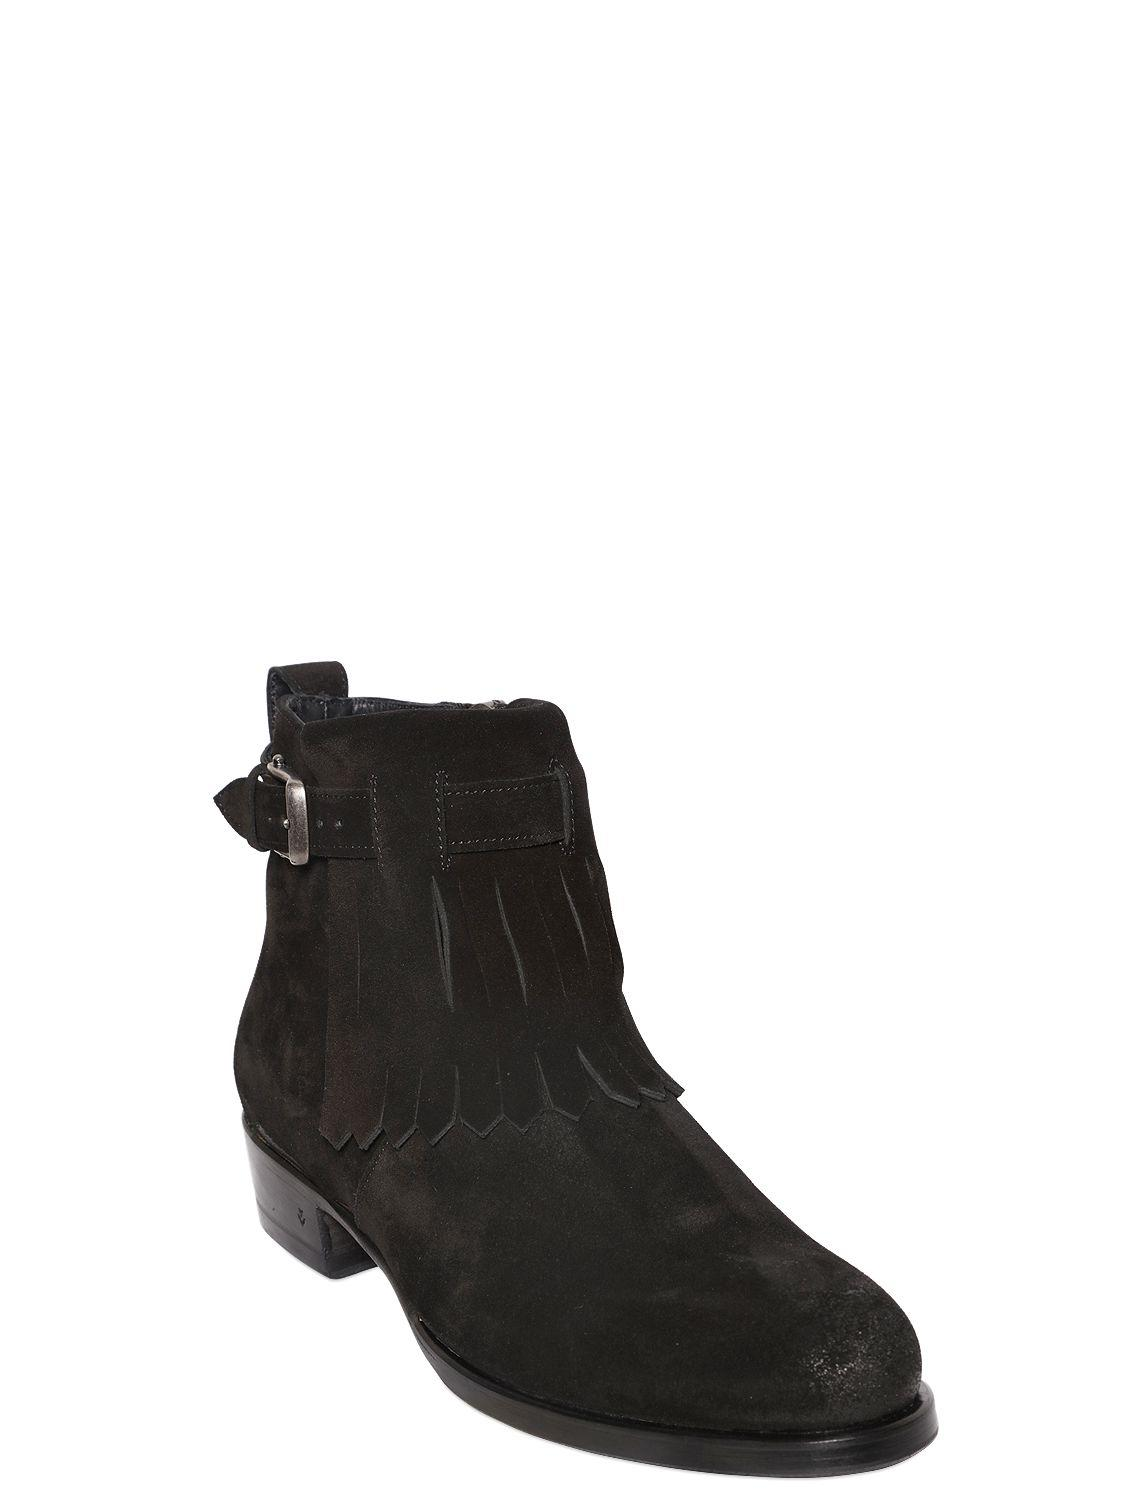 John Varvatos 30MM FRINGED SUEDE ANKLE BOOTS 0GUvfCZAJ